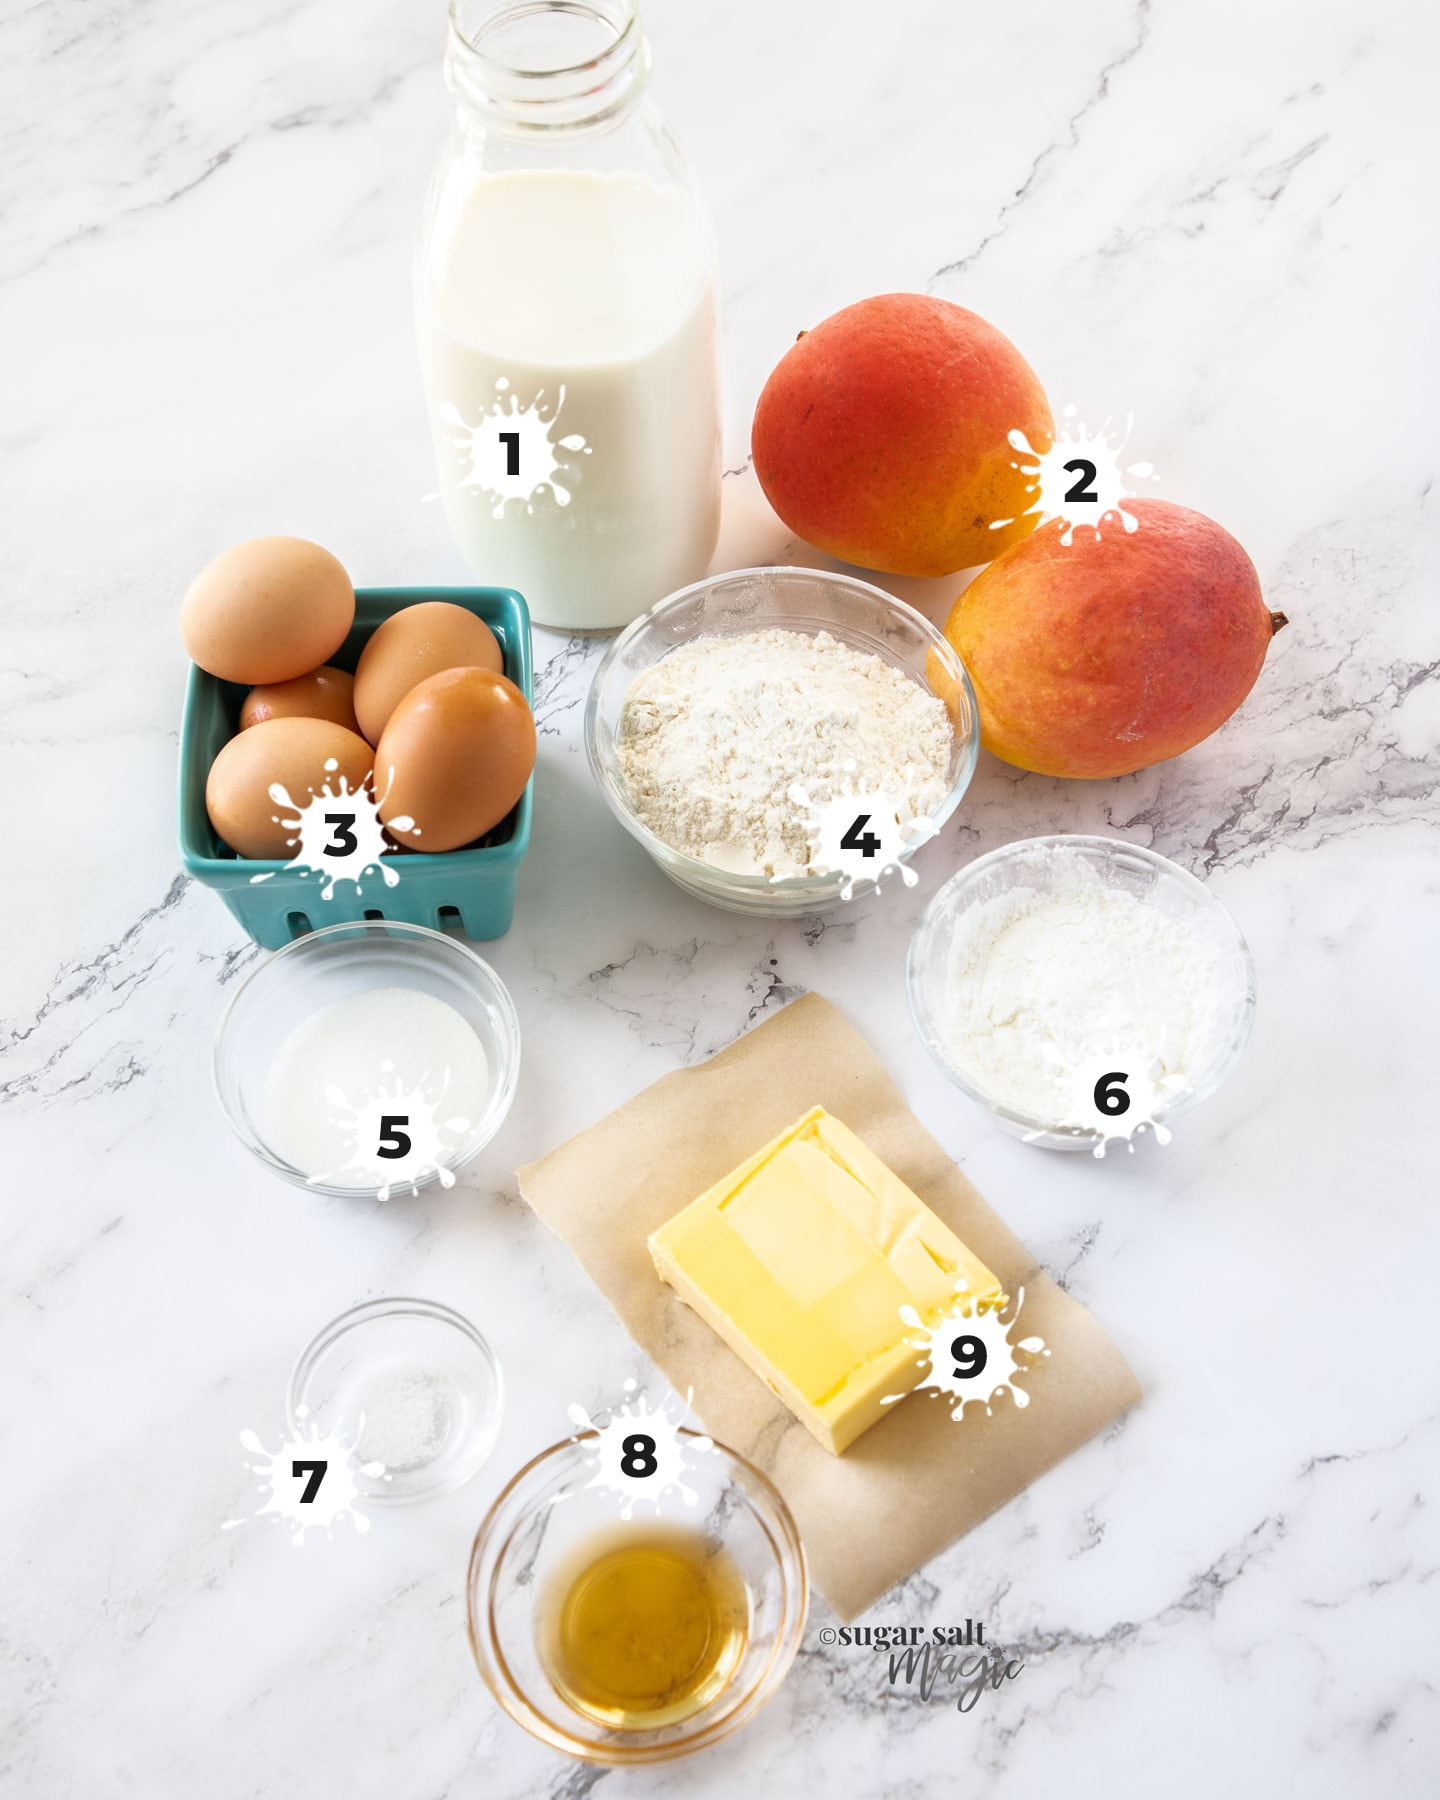 Ingredients for mango tart on a white marble surface